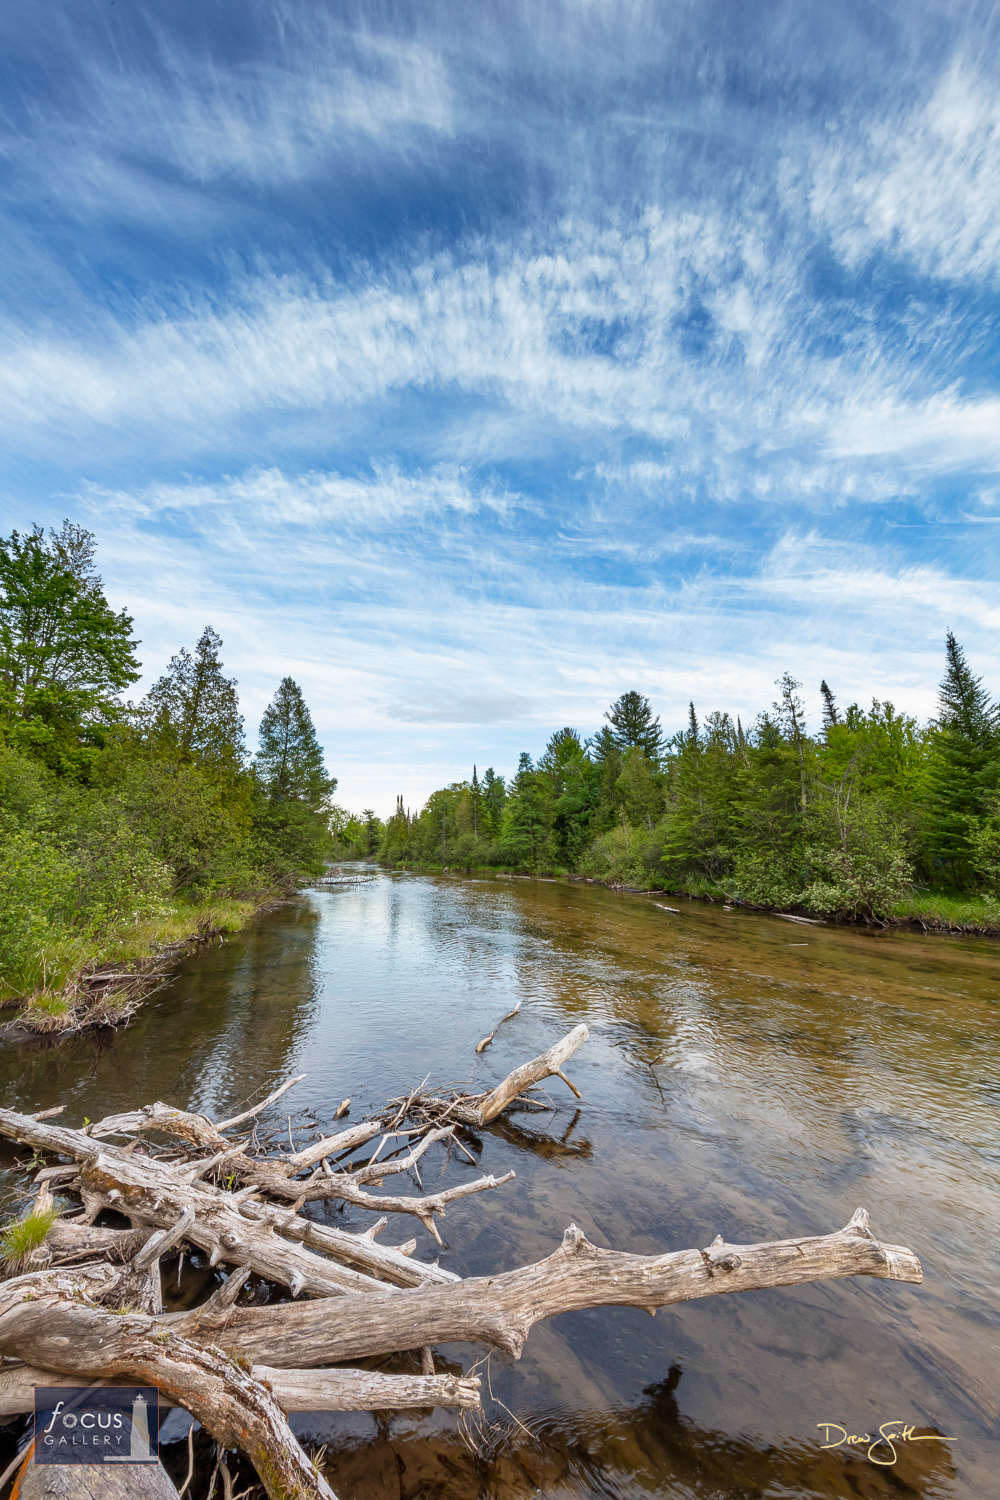 Photo © Drew Smith The blue sky is filled with wispy cirrus clouds above the Platte River at Platte River Park. This image was...